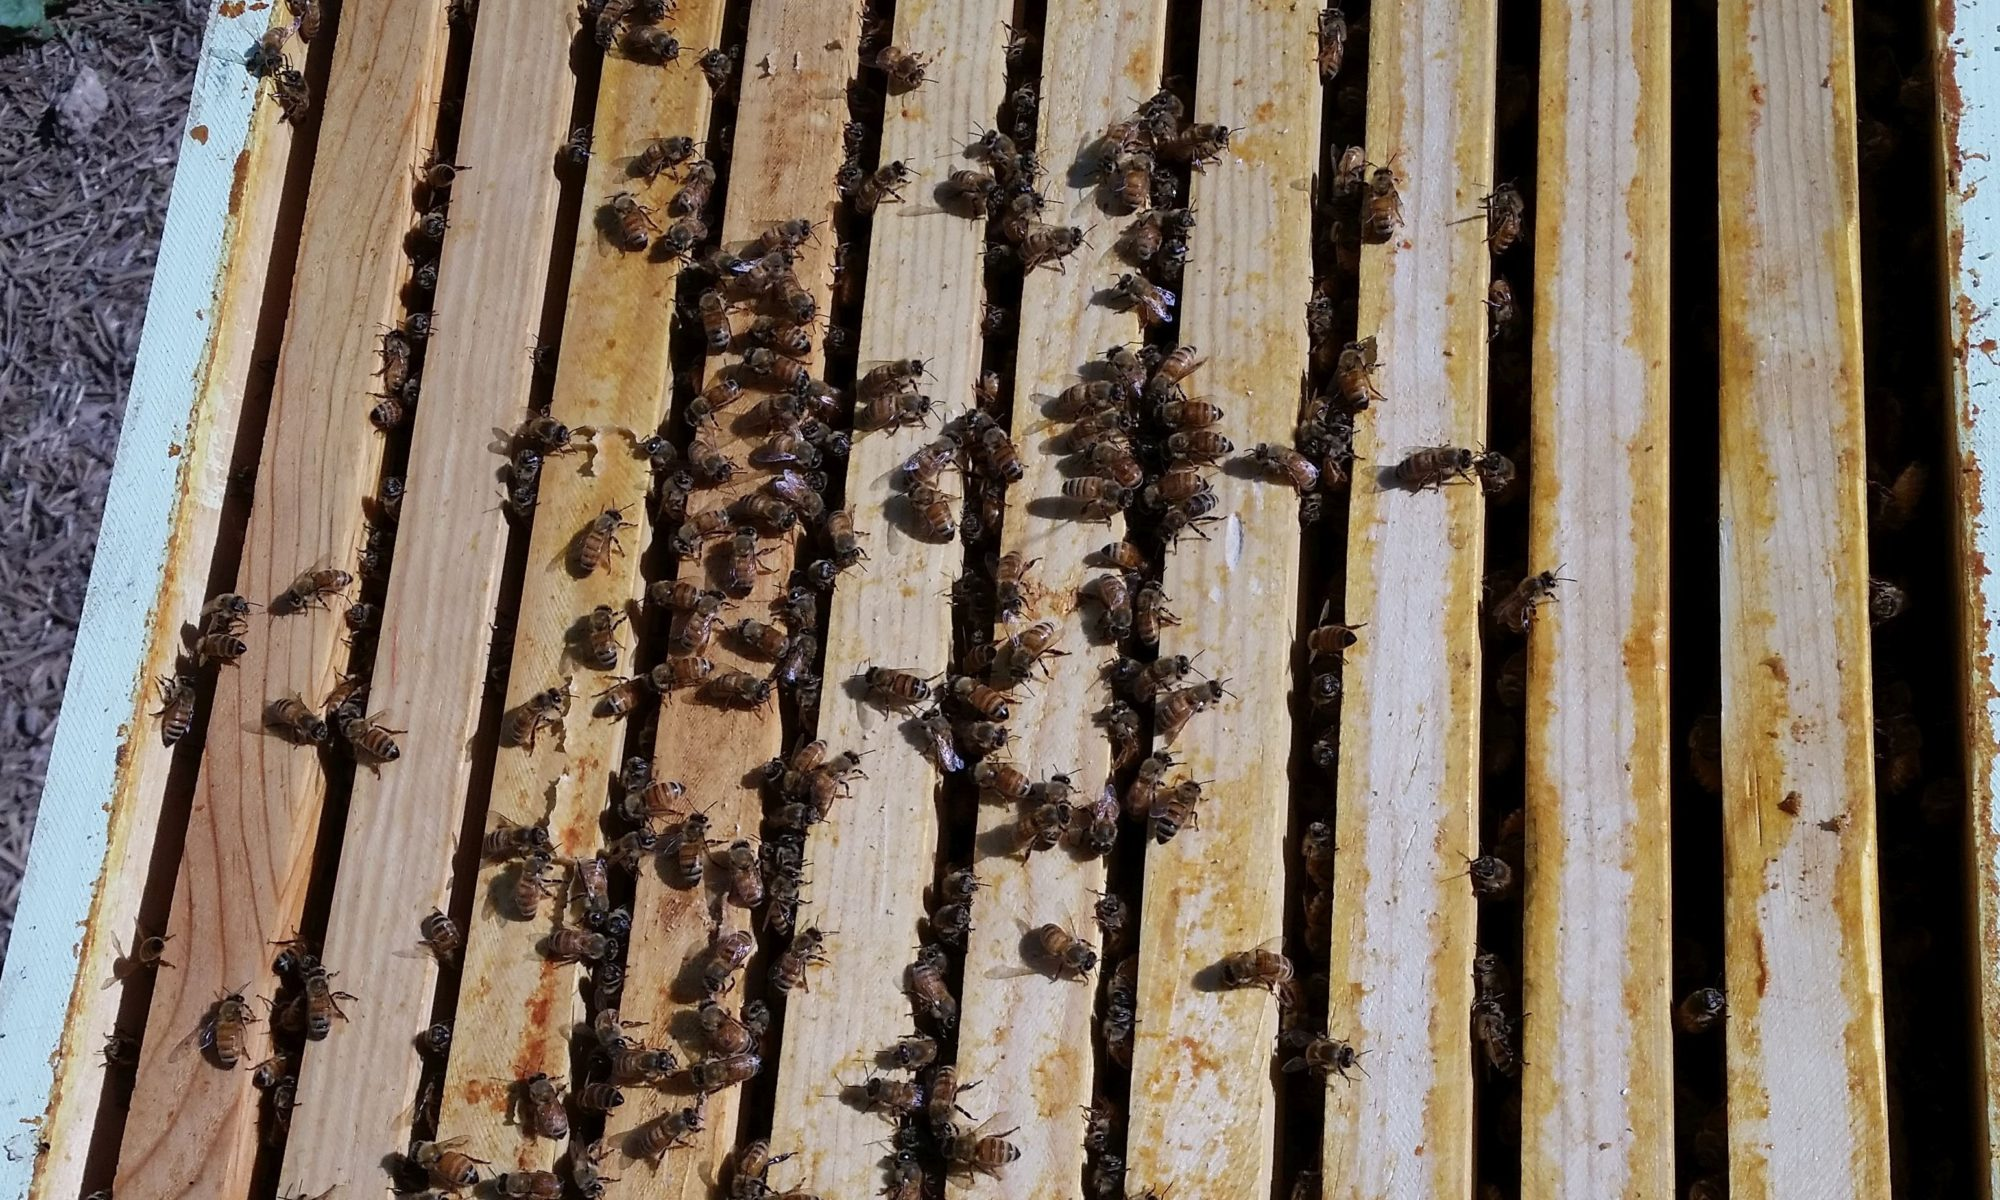 Bees atop the hive frames